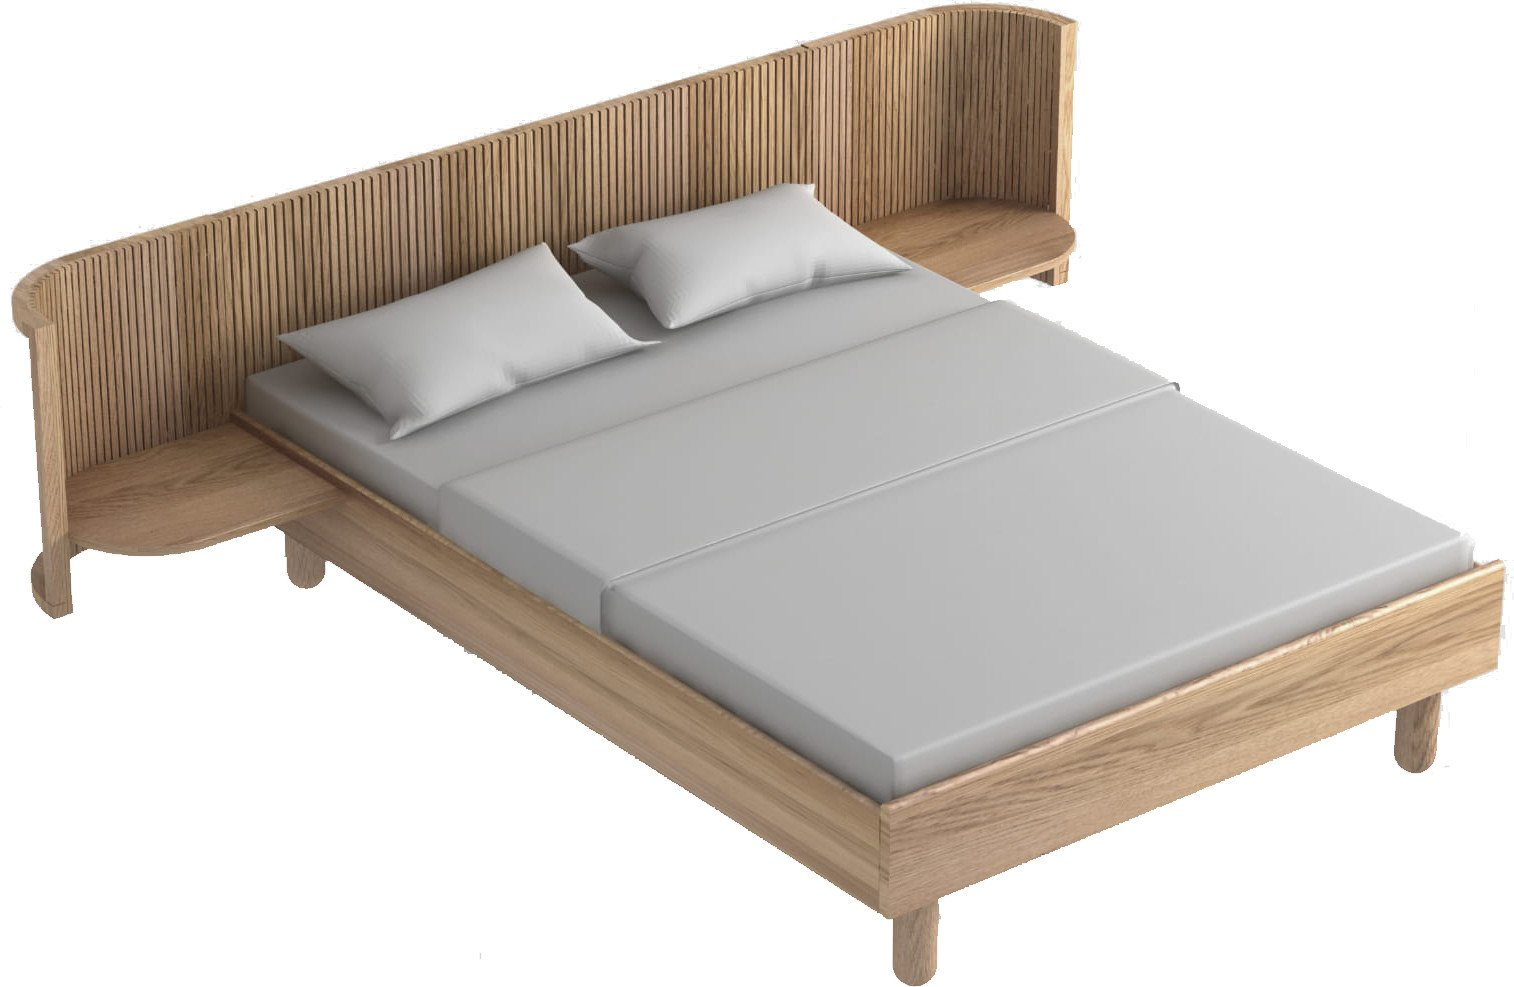 Hug Bed White Oak Oil Wax 140cm, Tamo